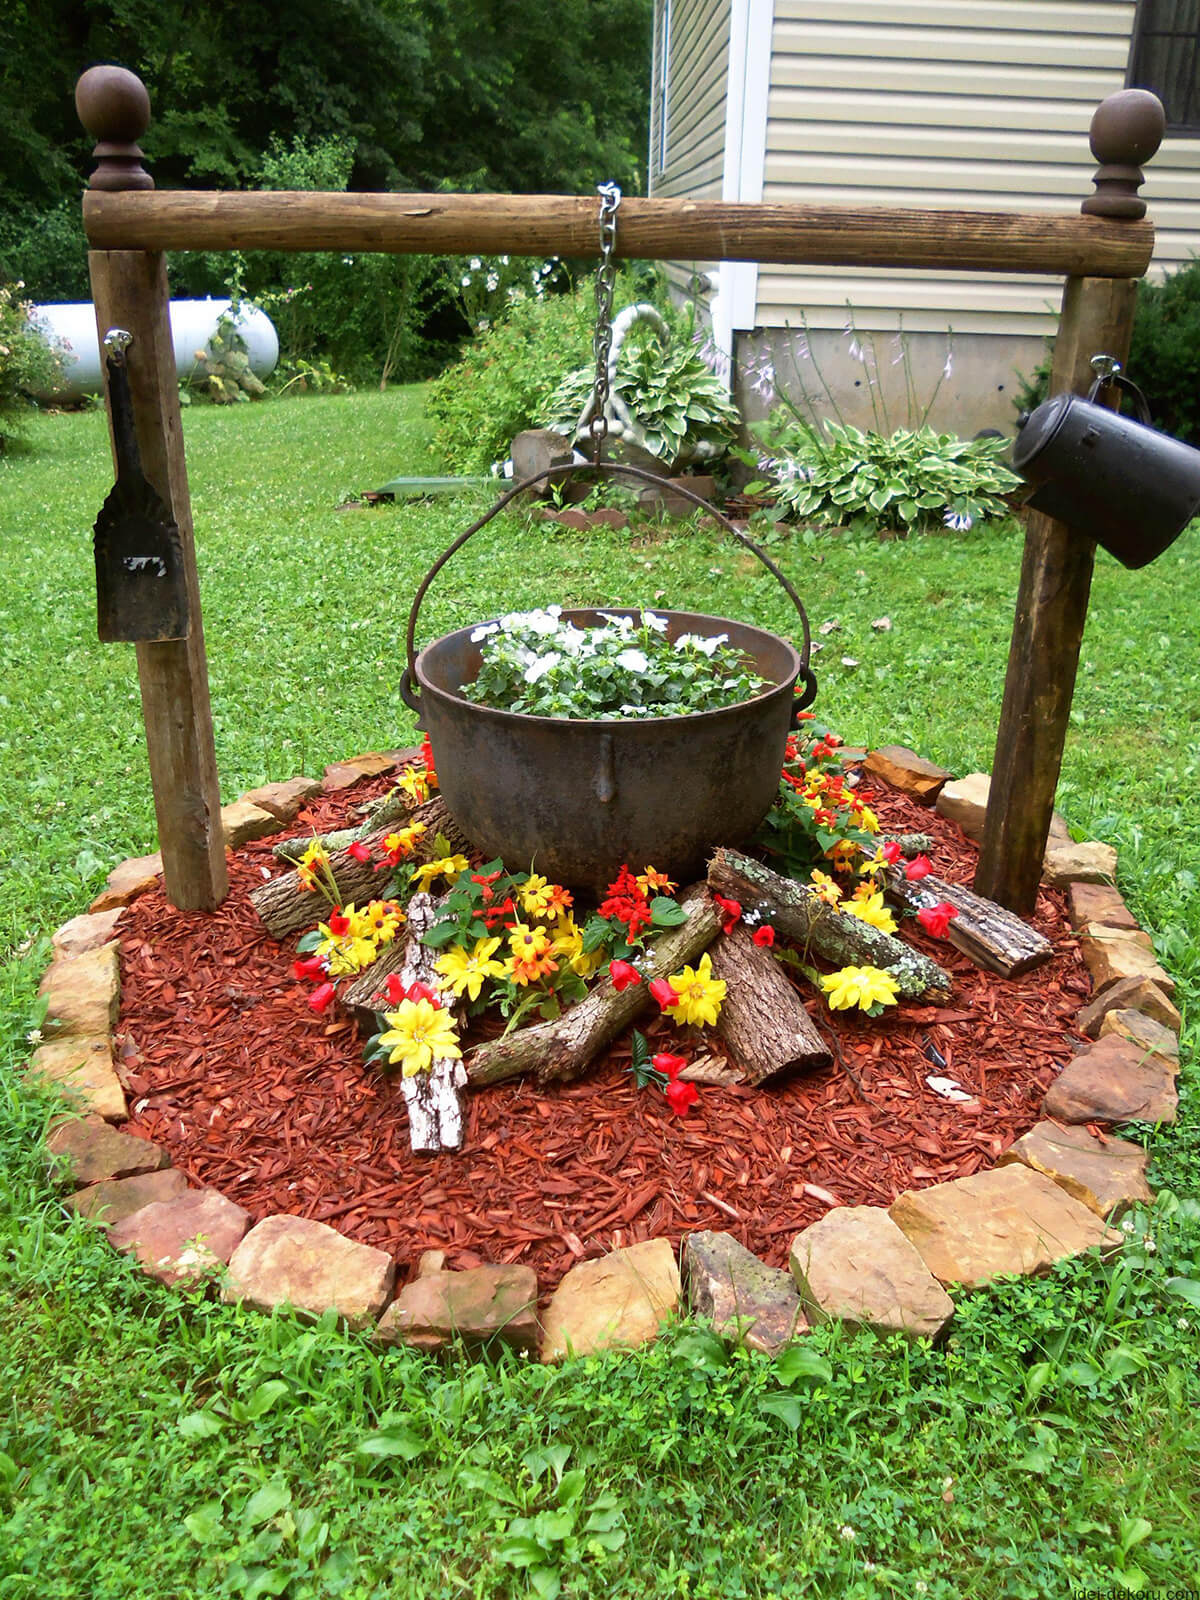 Captivating Antique Cauldron Flower Bed Design